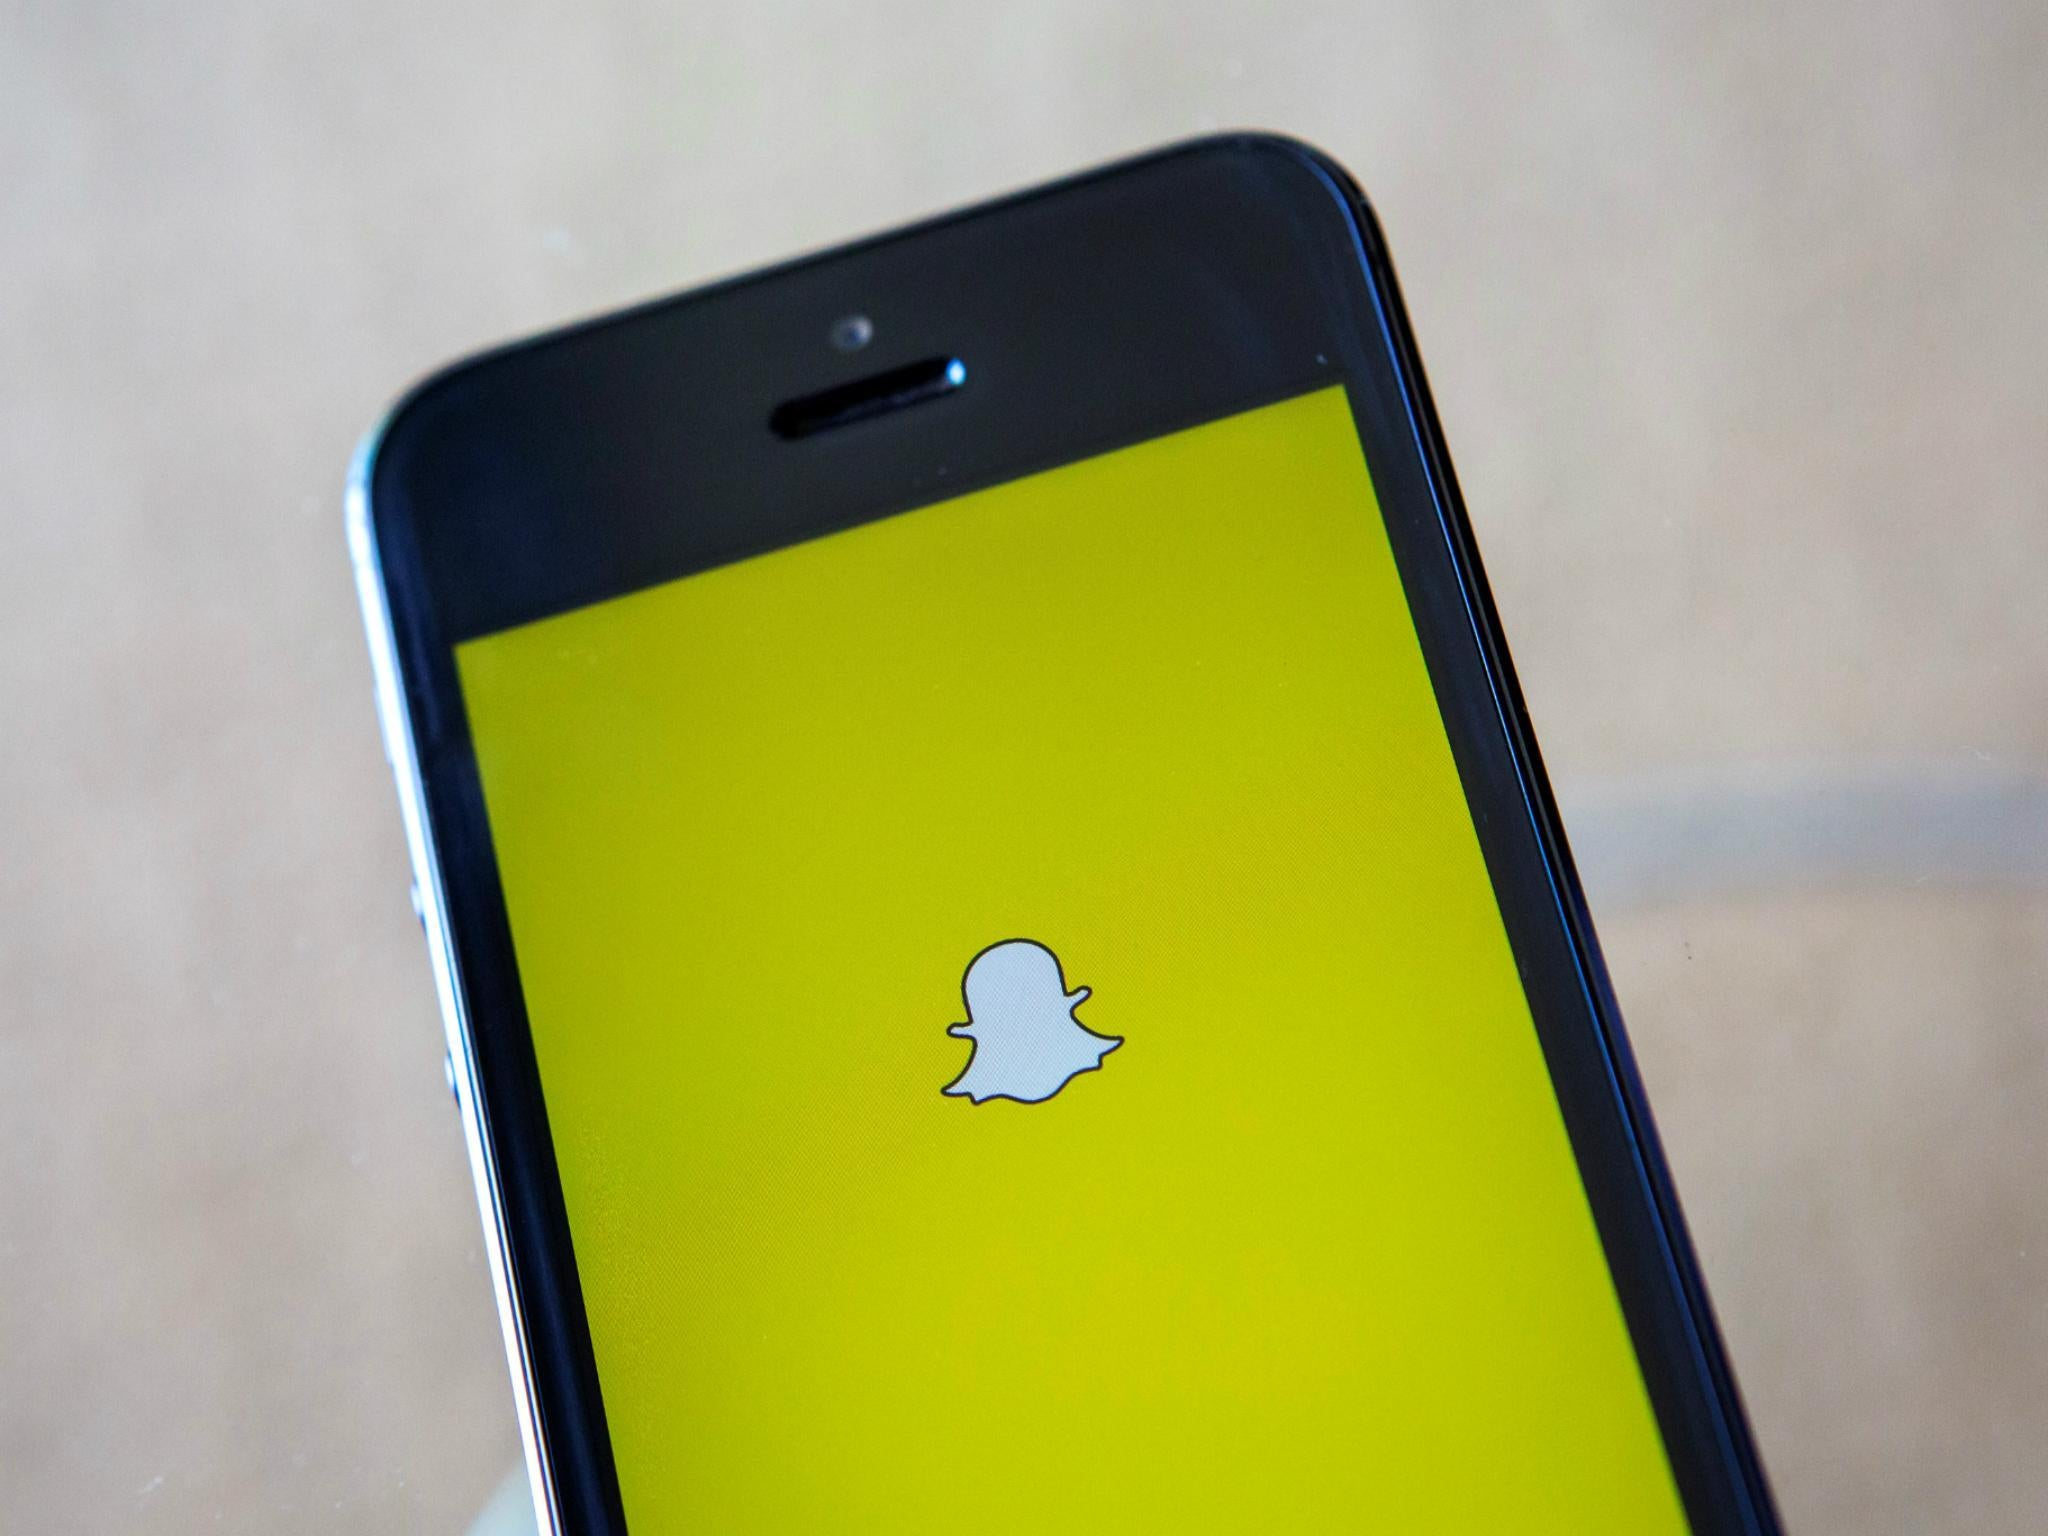 New Snapchat: Update Can't Be Reversed and Unhappy Users Should 'give it a Chance', Says Company